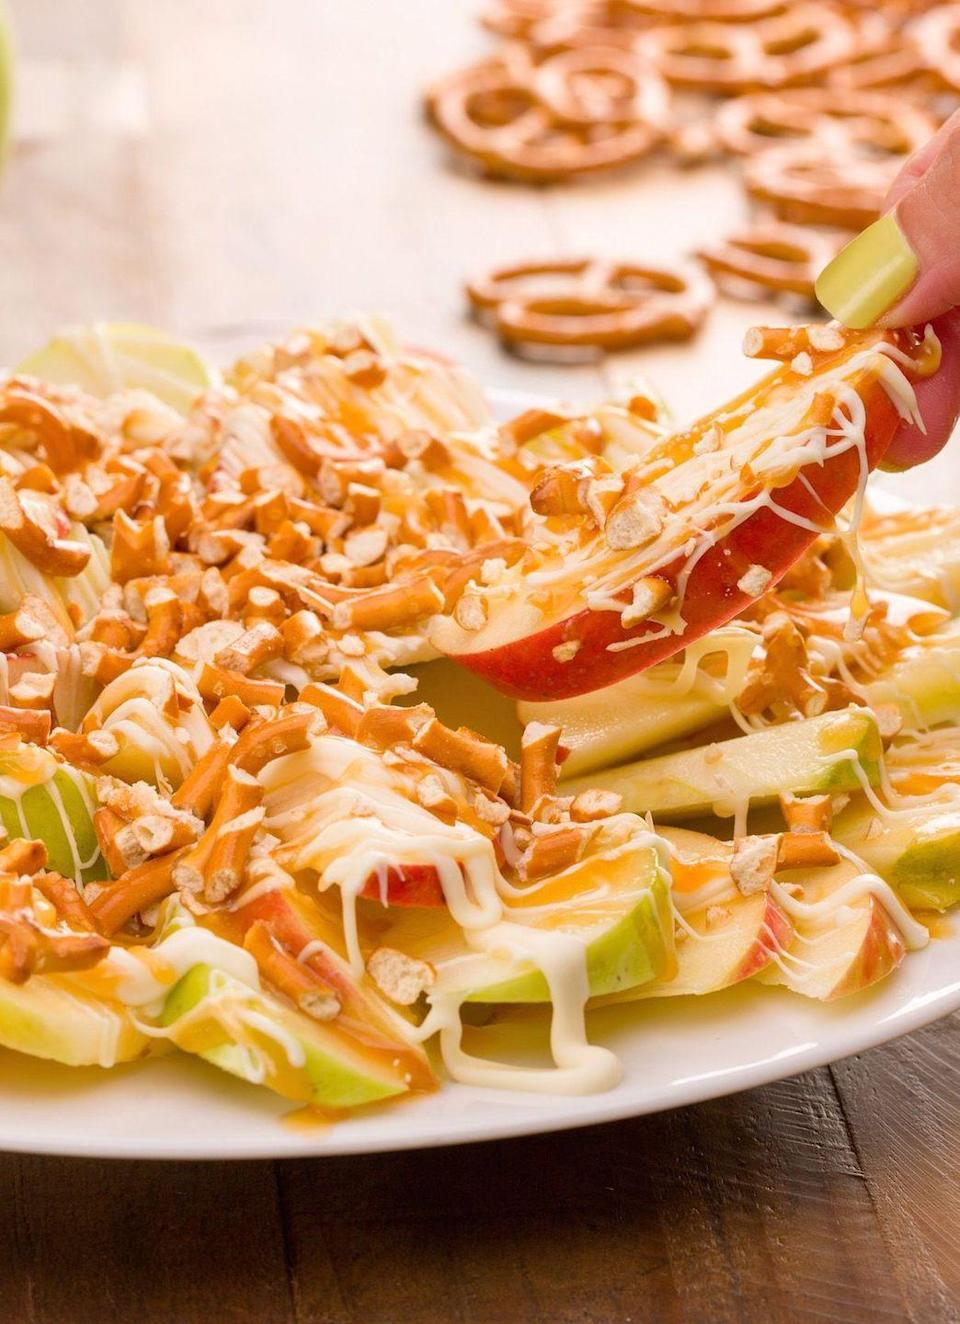 """<p>Who knew apples made such a sweet base for toppings? Your guests will hug you.</p><p>Get the recipe from <a href=""""https://www.delish.com/cooking/recipe-ideas/recipes/a43818/apple-nachos-recipe/"""" rel=""""nofollow noopener"""" target=""""_blank"""" data-ylk=""""slk:Delish"""" class=""""link rapid-noclick-resp"""">Delish</a>.</p>"""